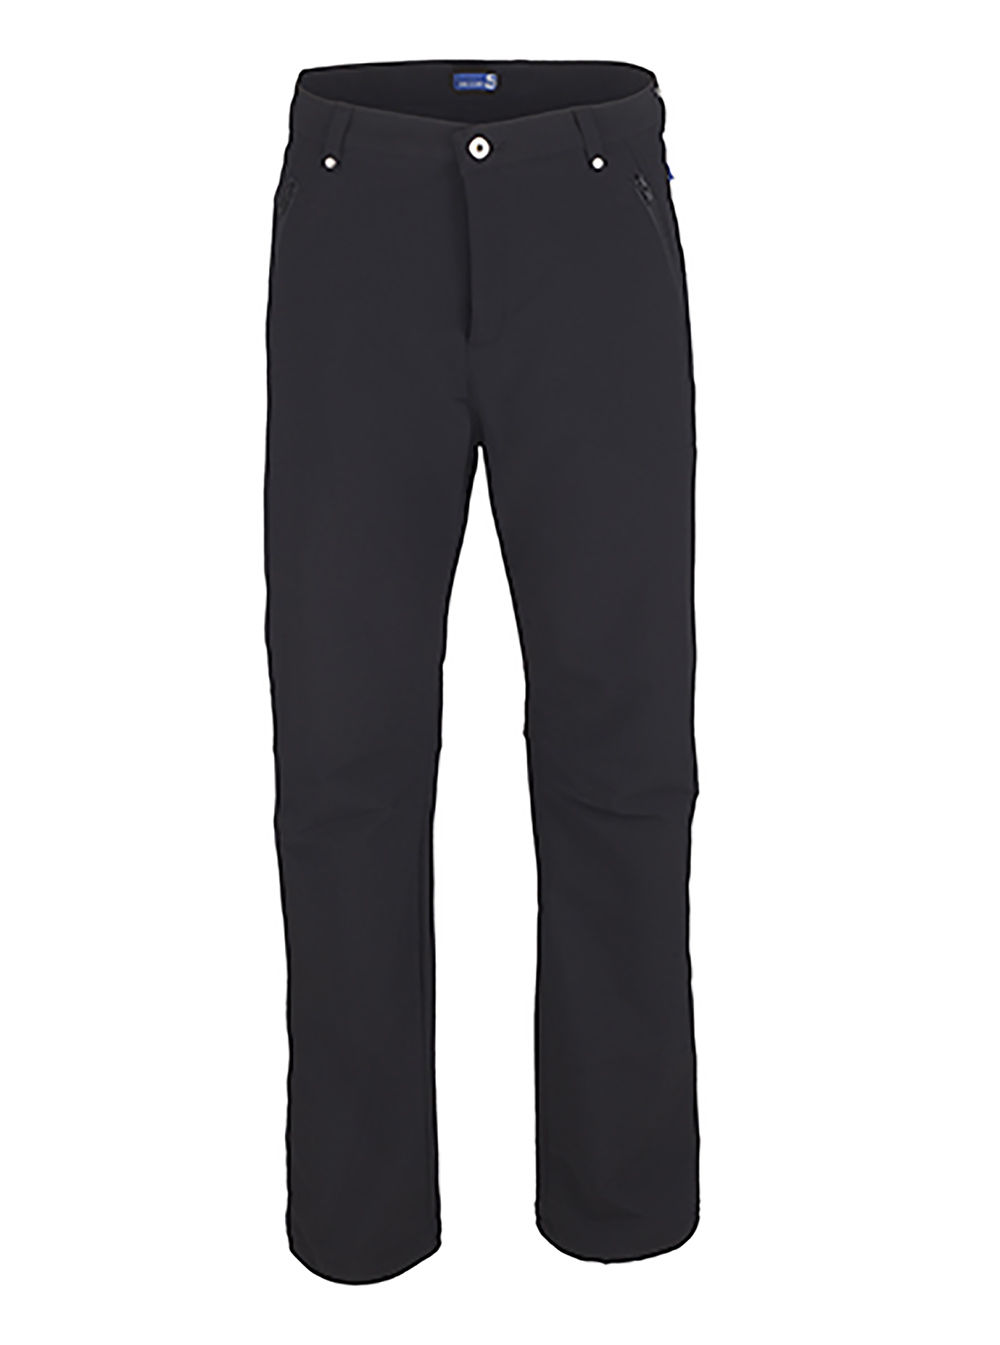 Sail&ski Ali Pants M